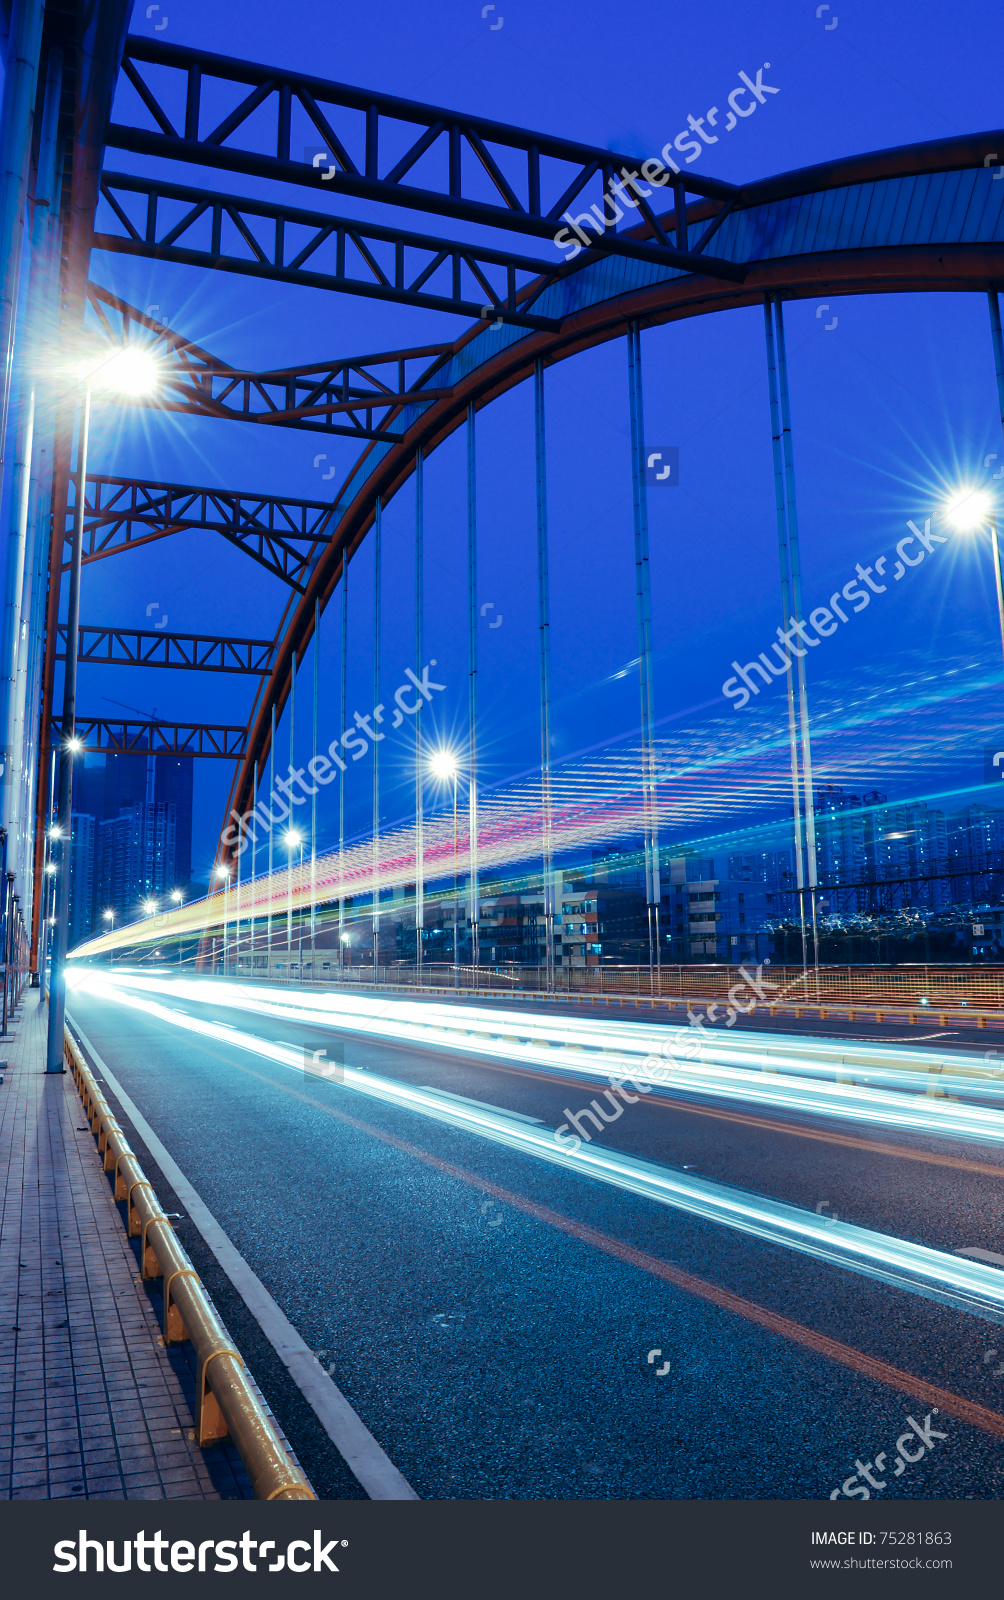 Slow Shutter Speed Shooting Cars Driving Stock Photo 75281863.